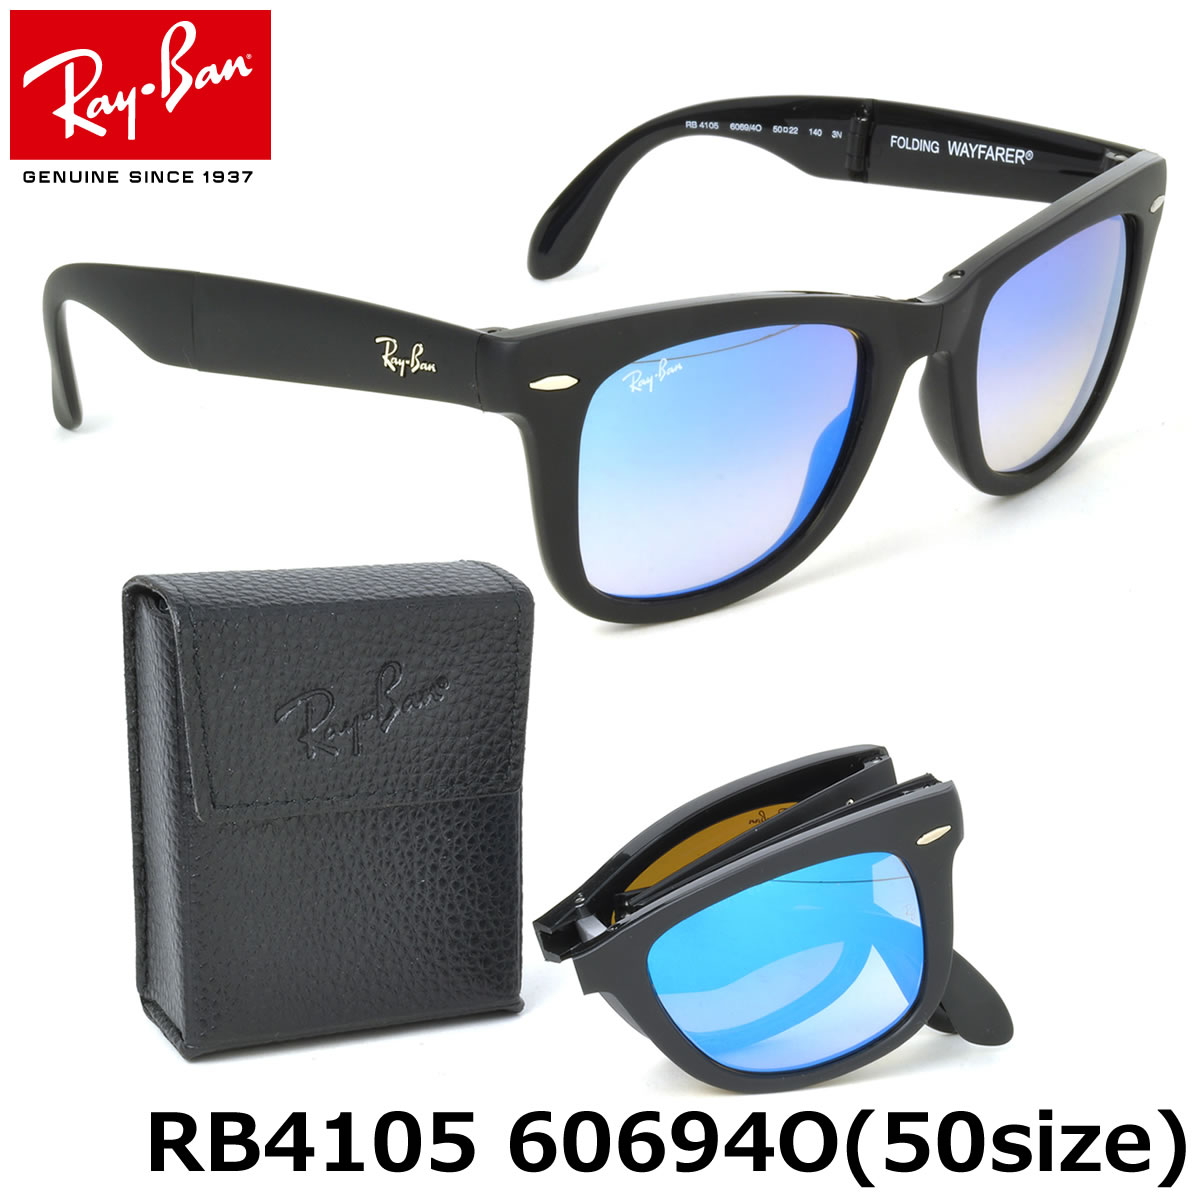 39628f868c6 It is a foldable folding type of one of the most popular models way Farrar  now. In pronominal existence way Farrar WAYFARER of Ray-Ban